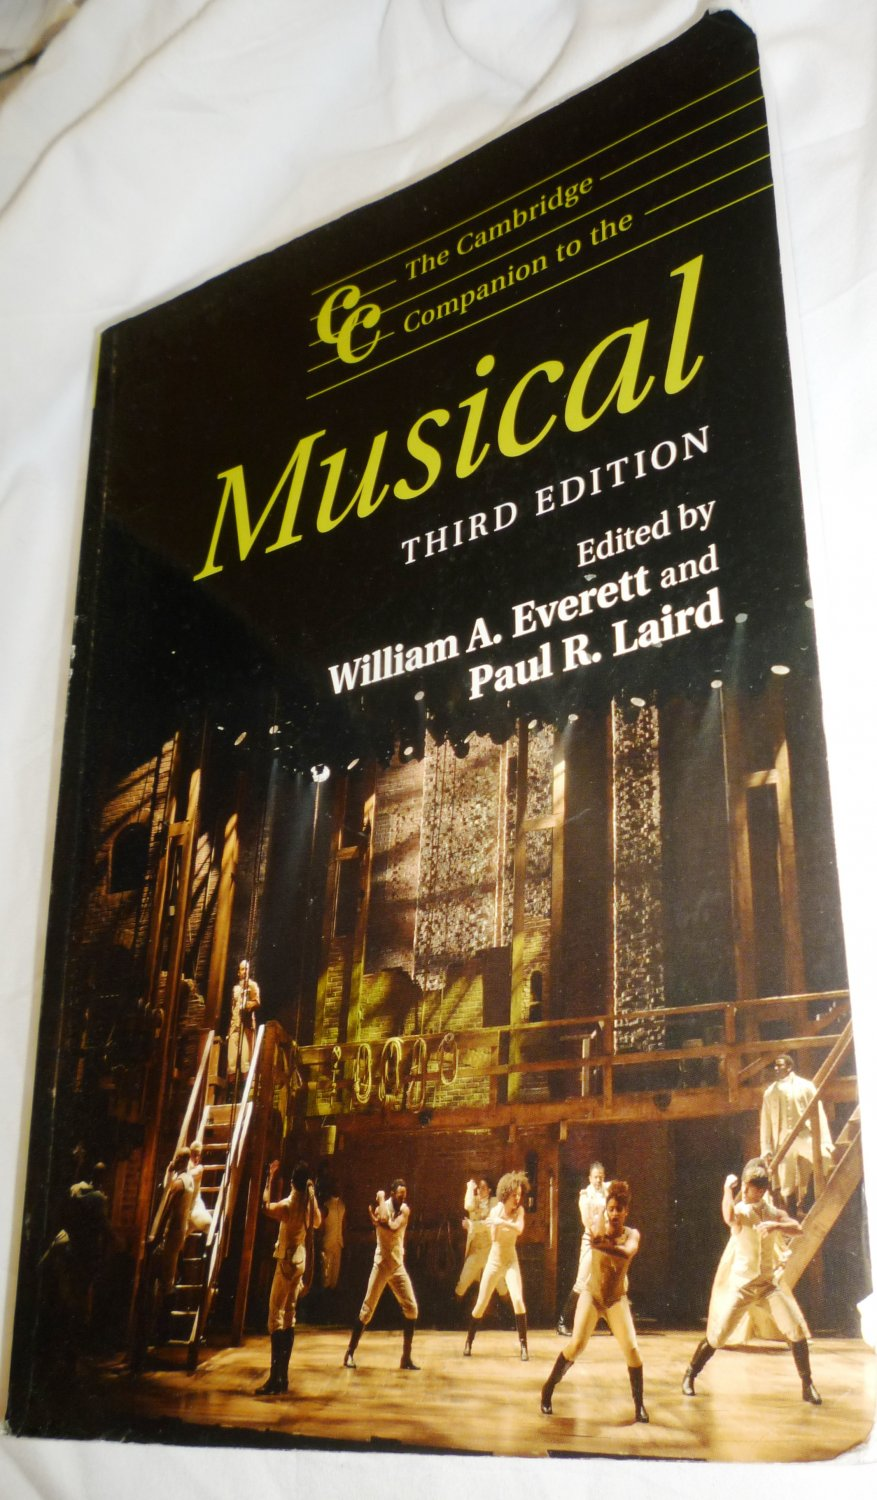 THE CAMBRIDGE COMPANION TO THE MUSICAL 3RD EDITION by EVERETT AND LAIRD